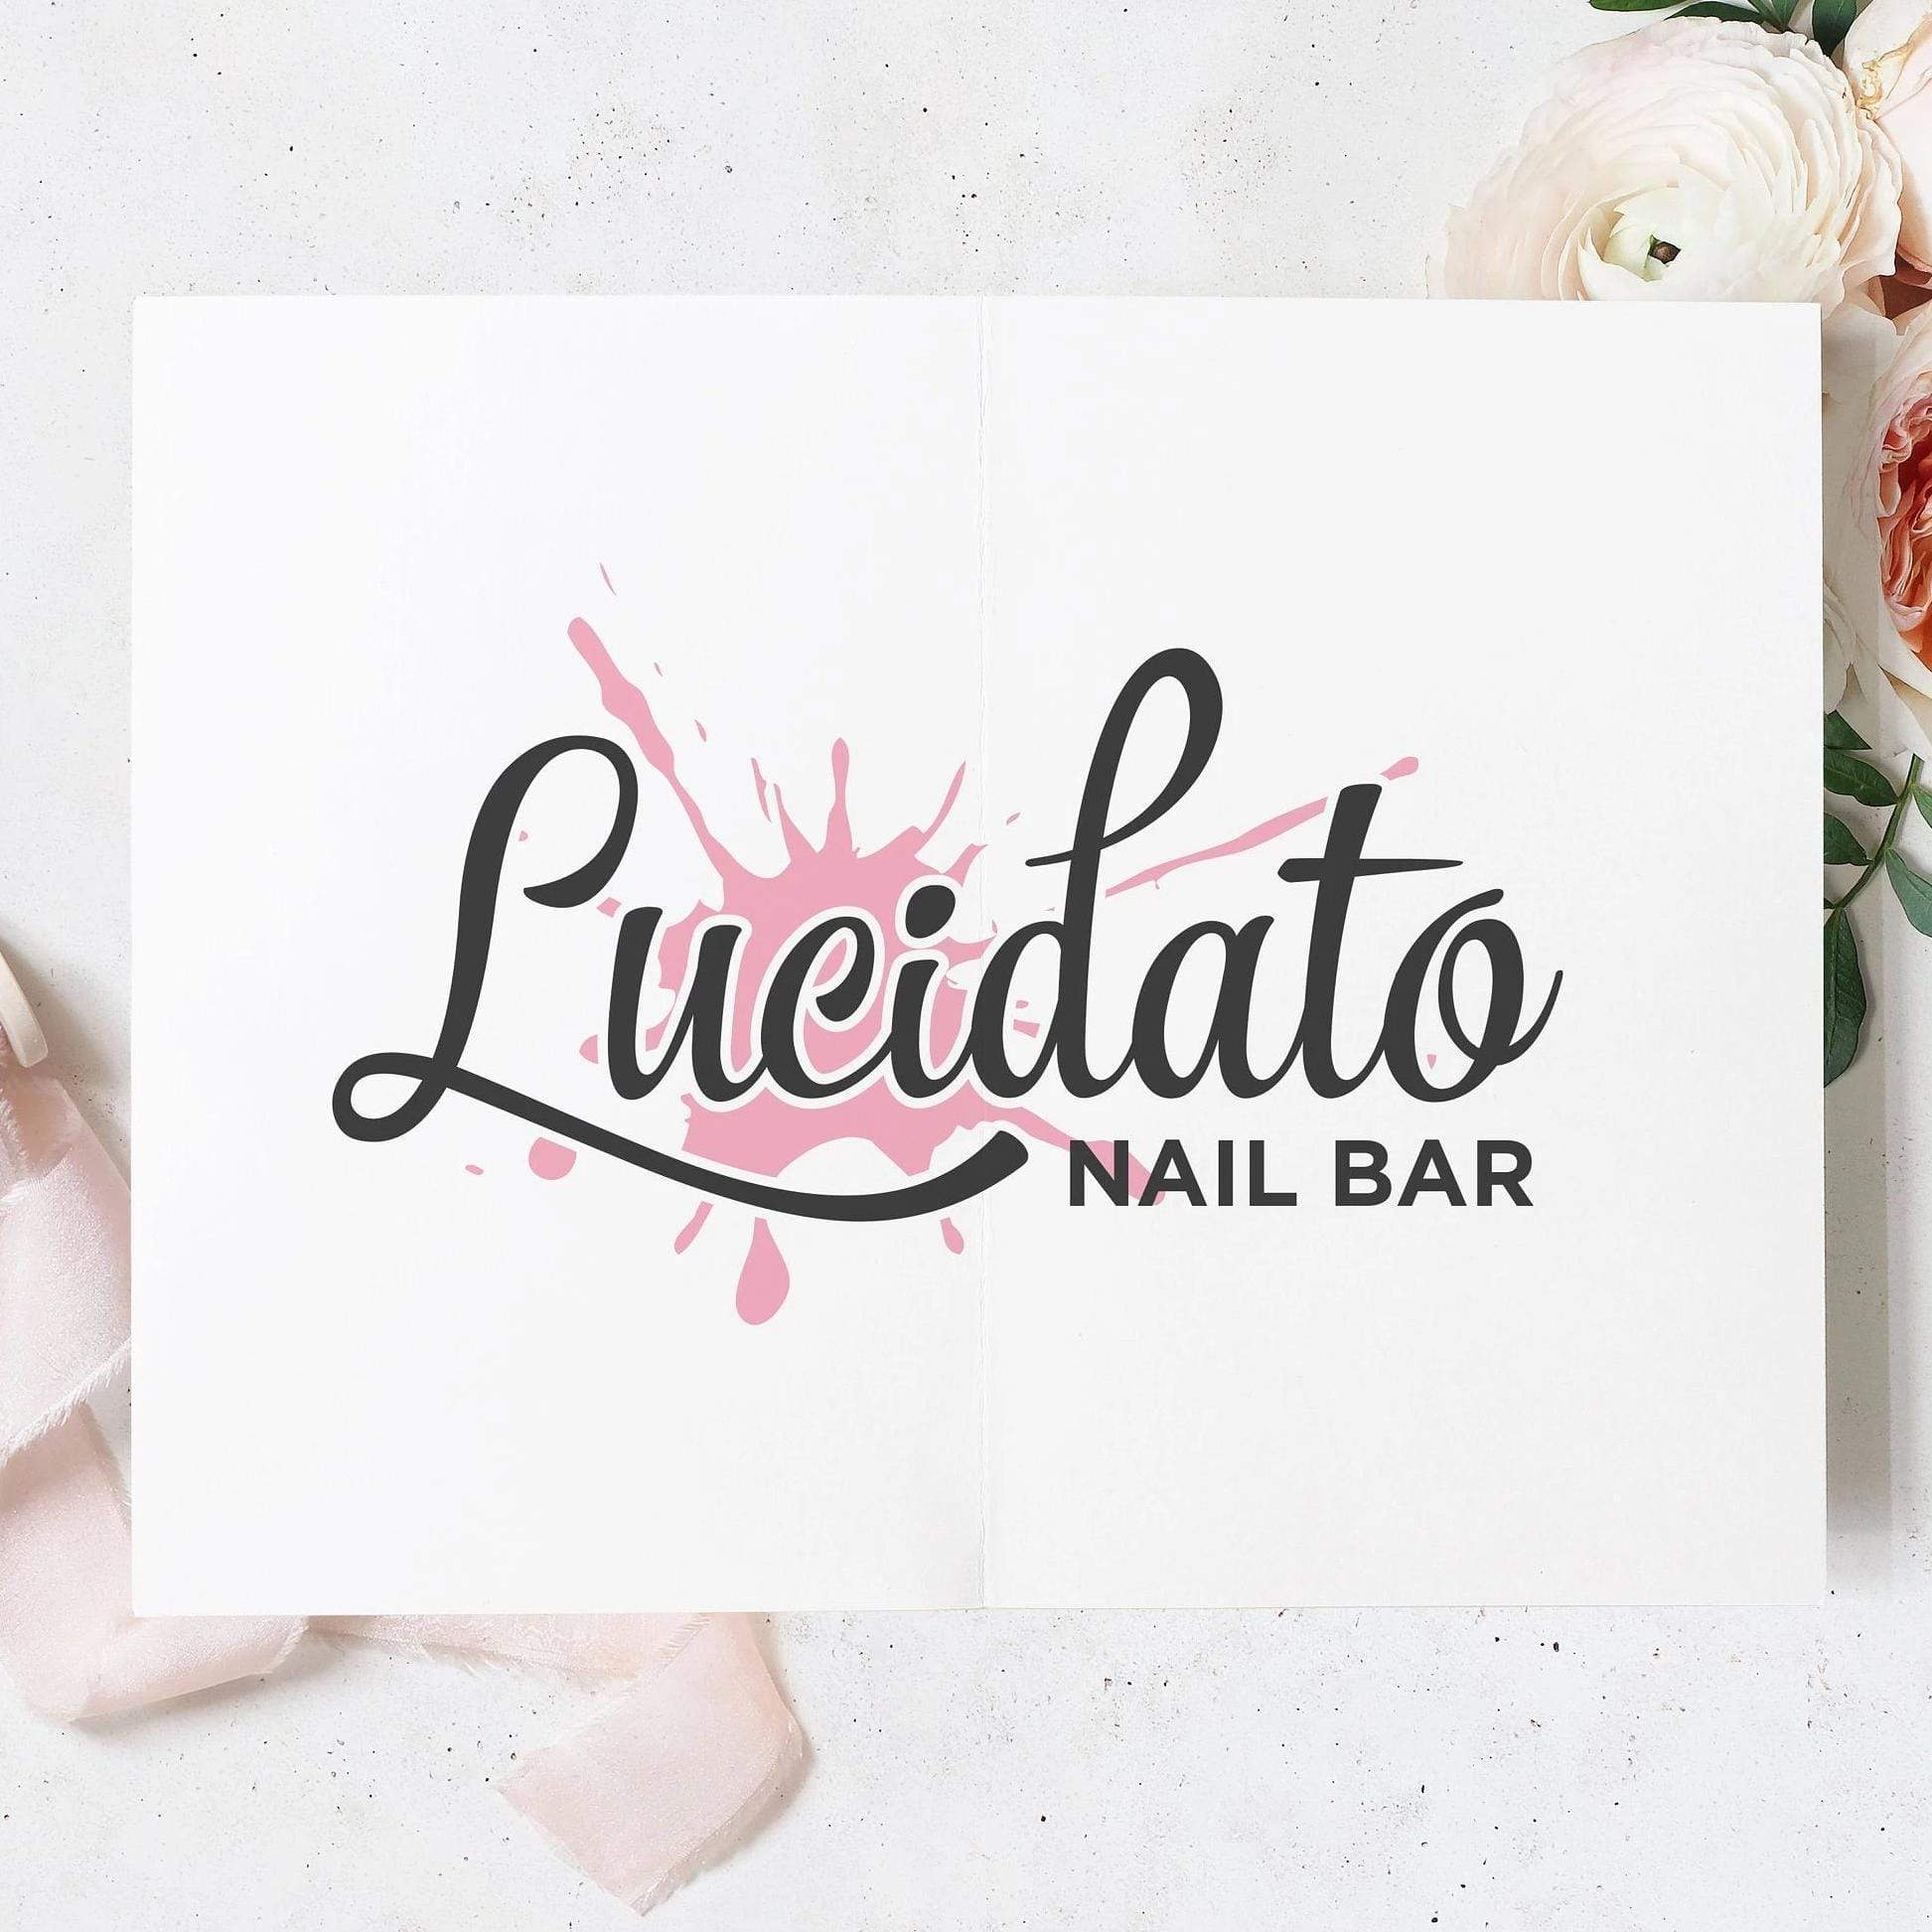 Leanne & Co. Branding Kit Nail Salon Branding Kit